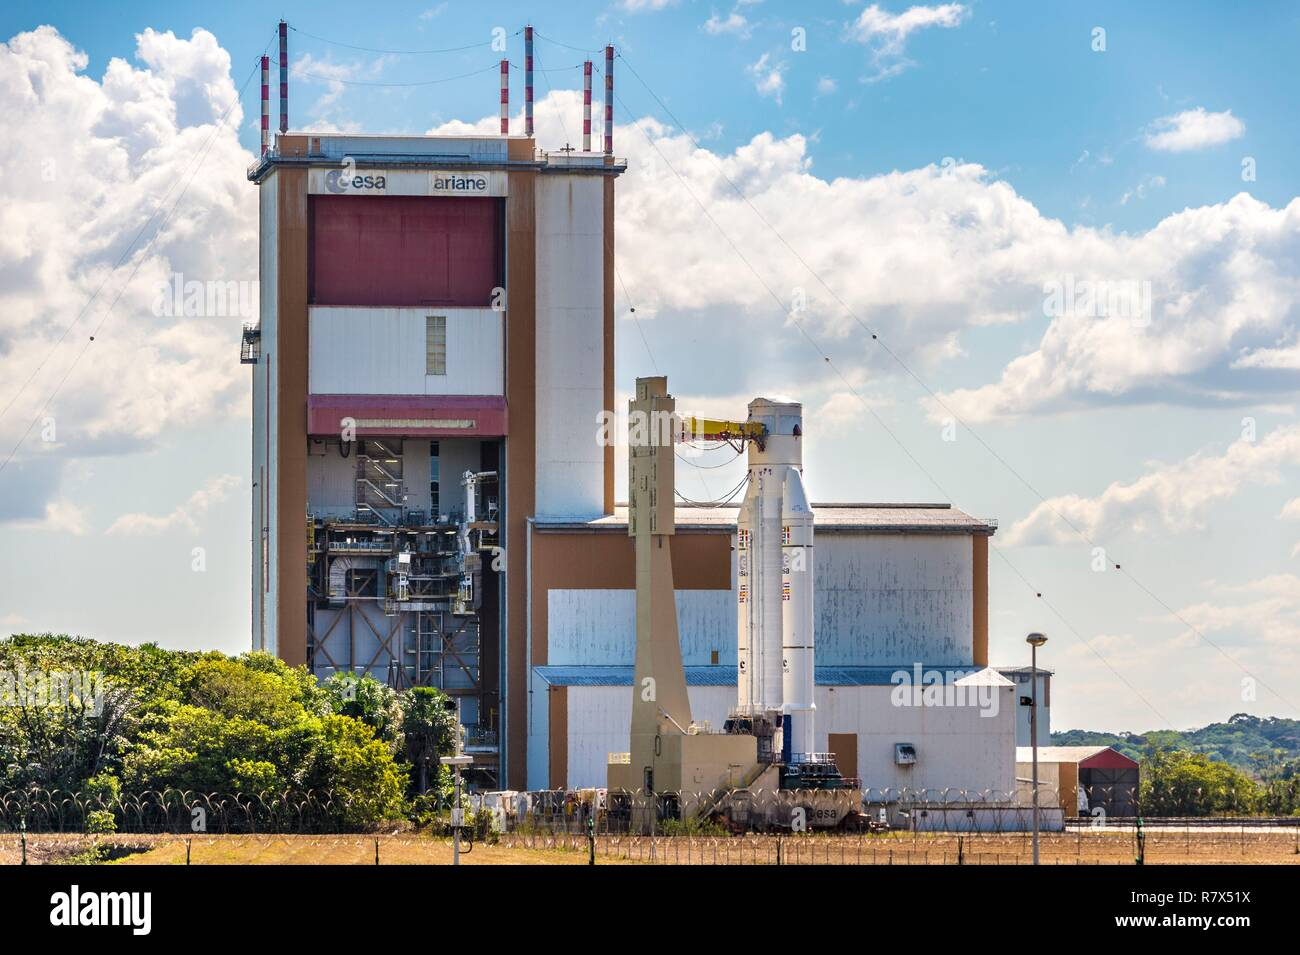 France, French Guiana, Kourou, Guiana Space Center (CSG), the Ariane V rocket is driven on rails to the Launcher Integration Building (BIL) - Stock Image